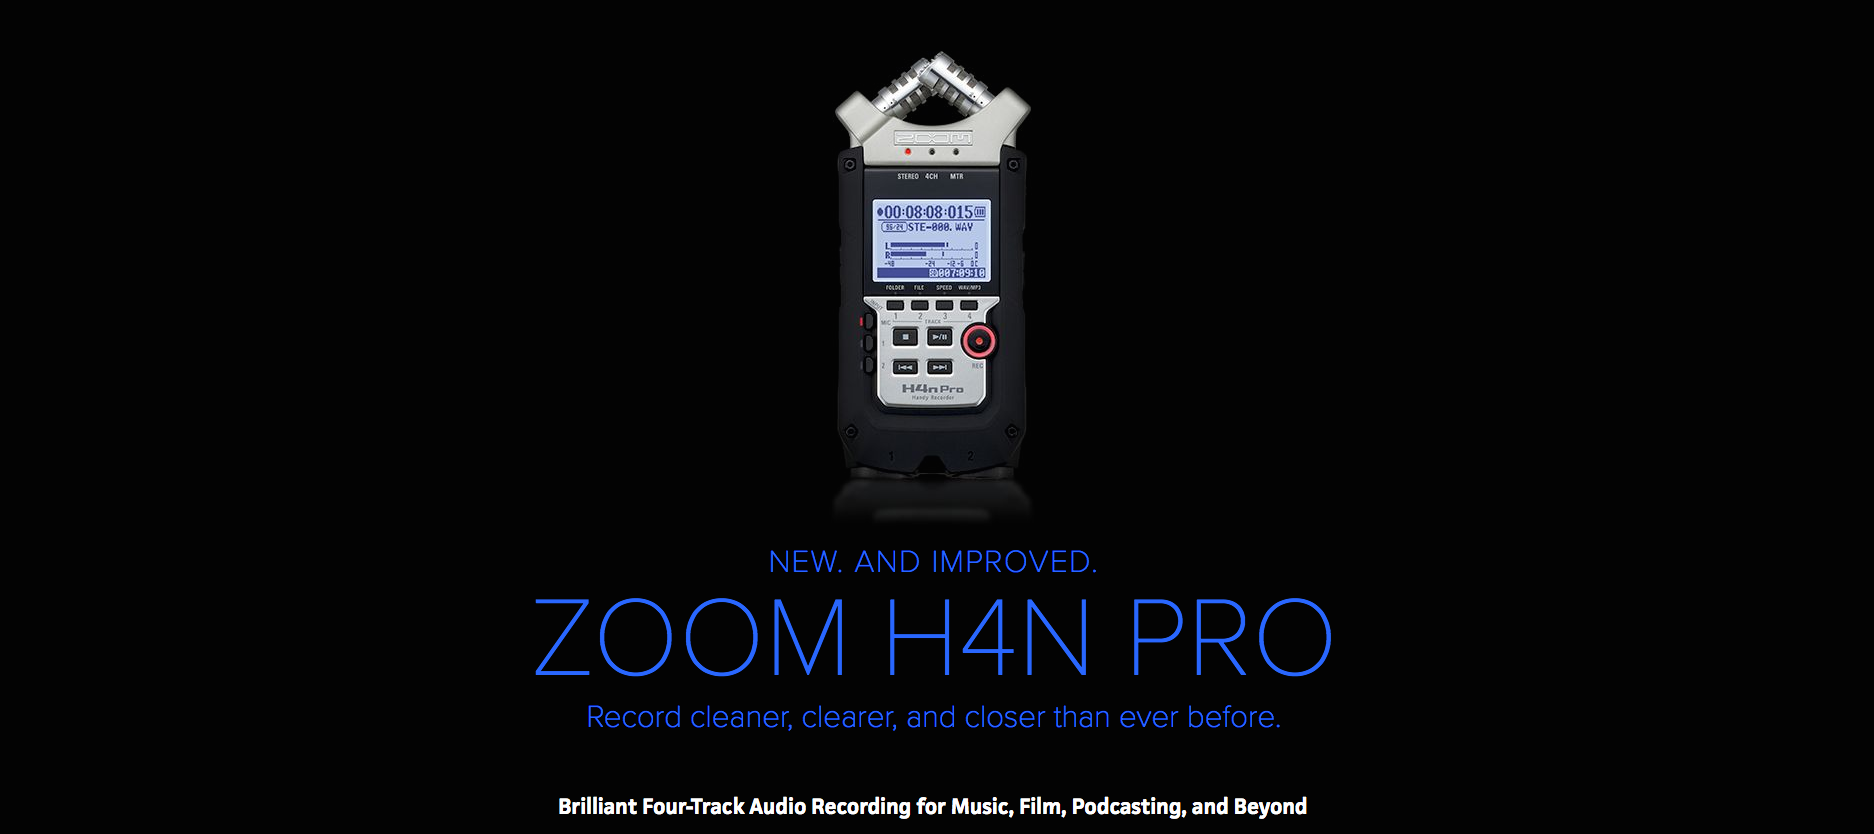 Zoom H4N Pro Dealer Vancouver Canada